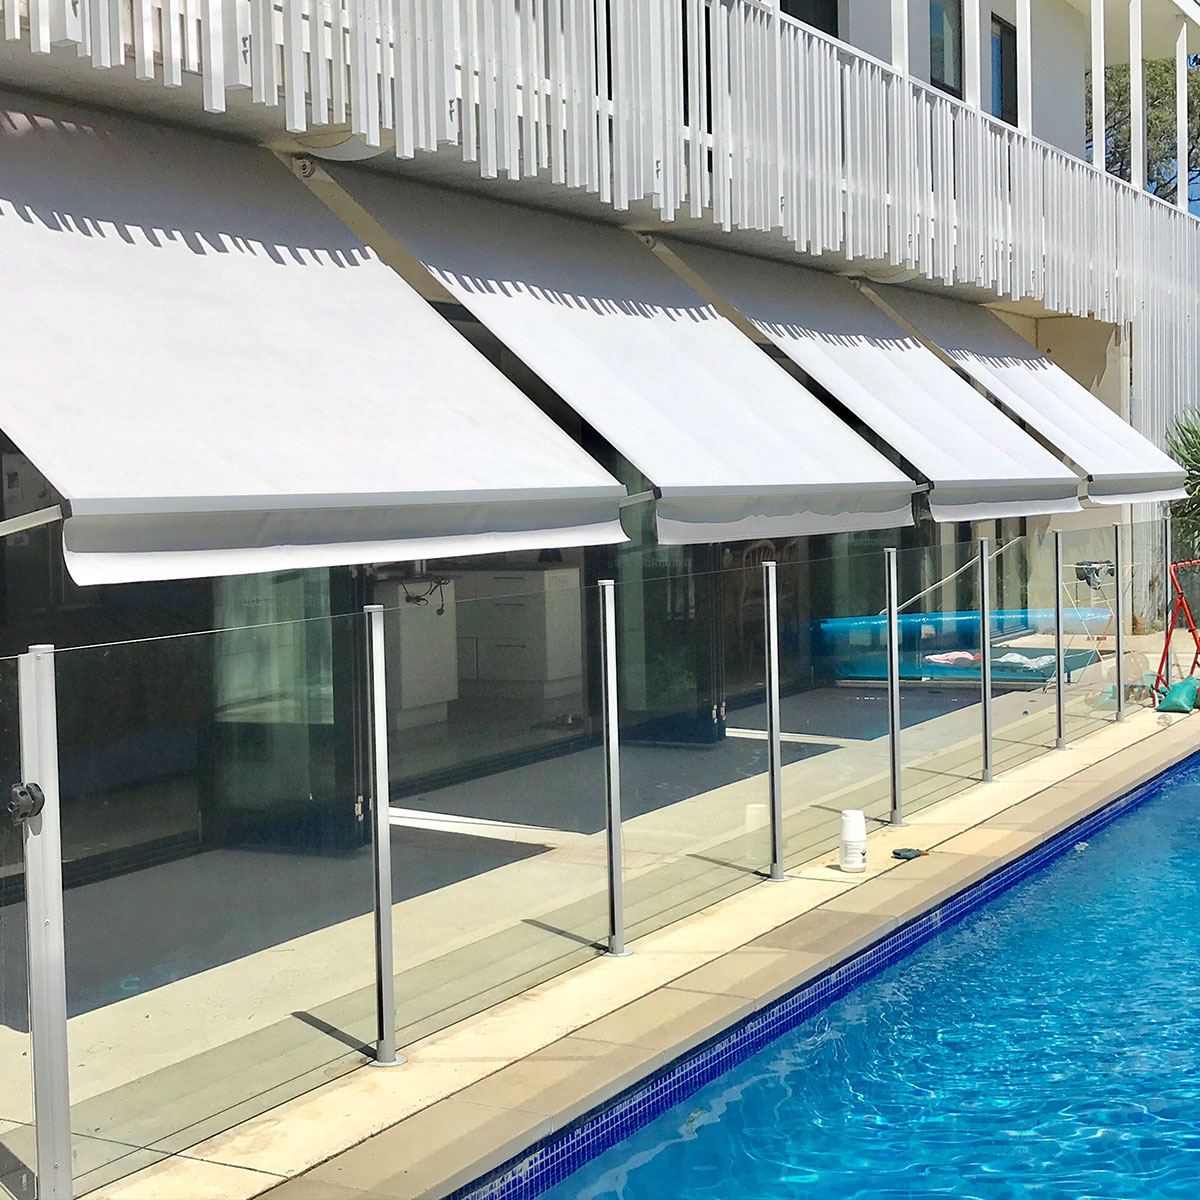 heavy duty robusta pivot arm awnings over pool